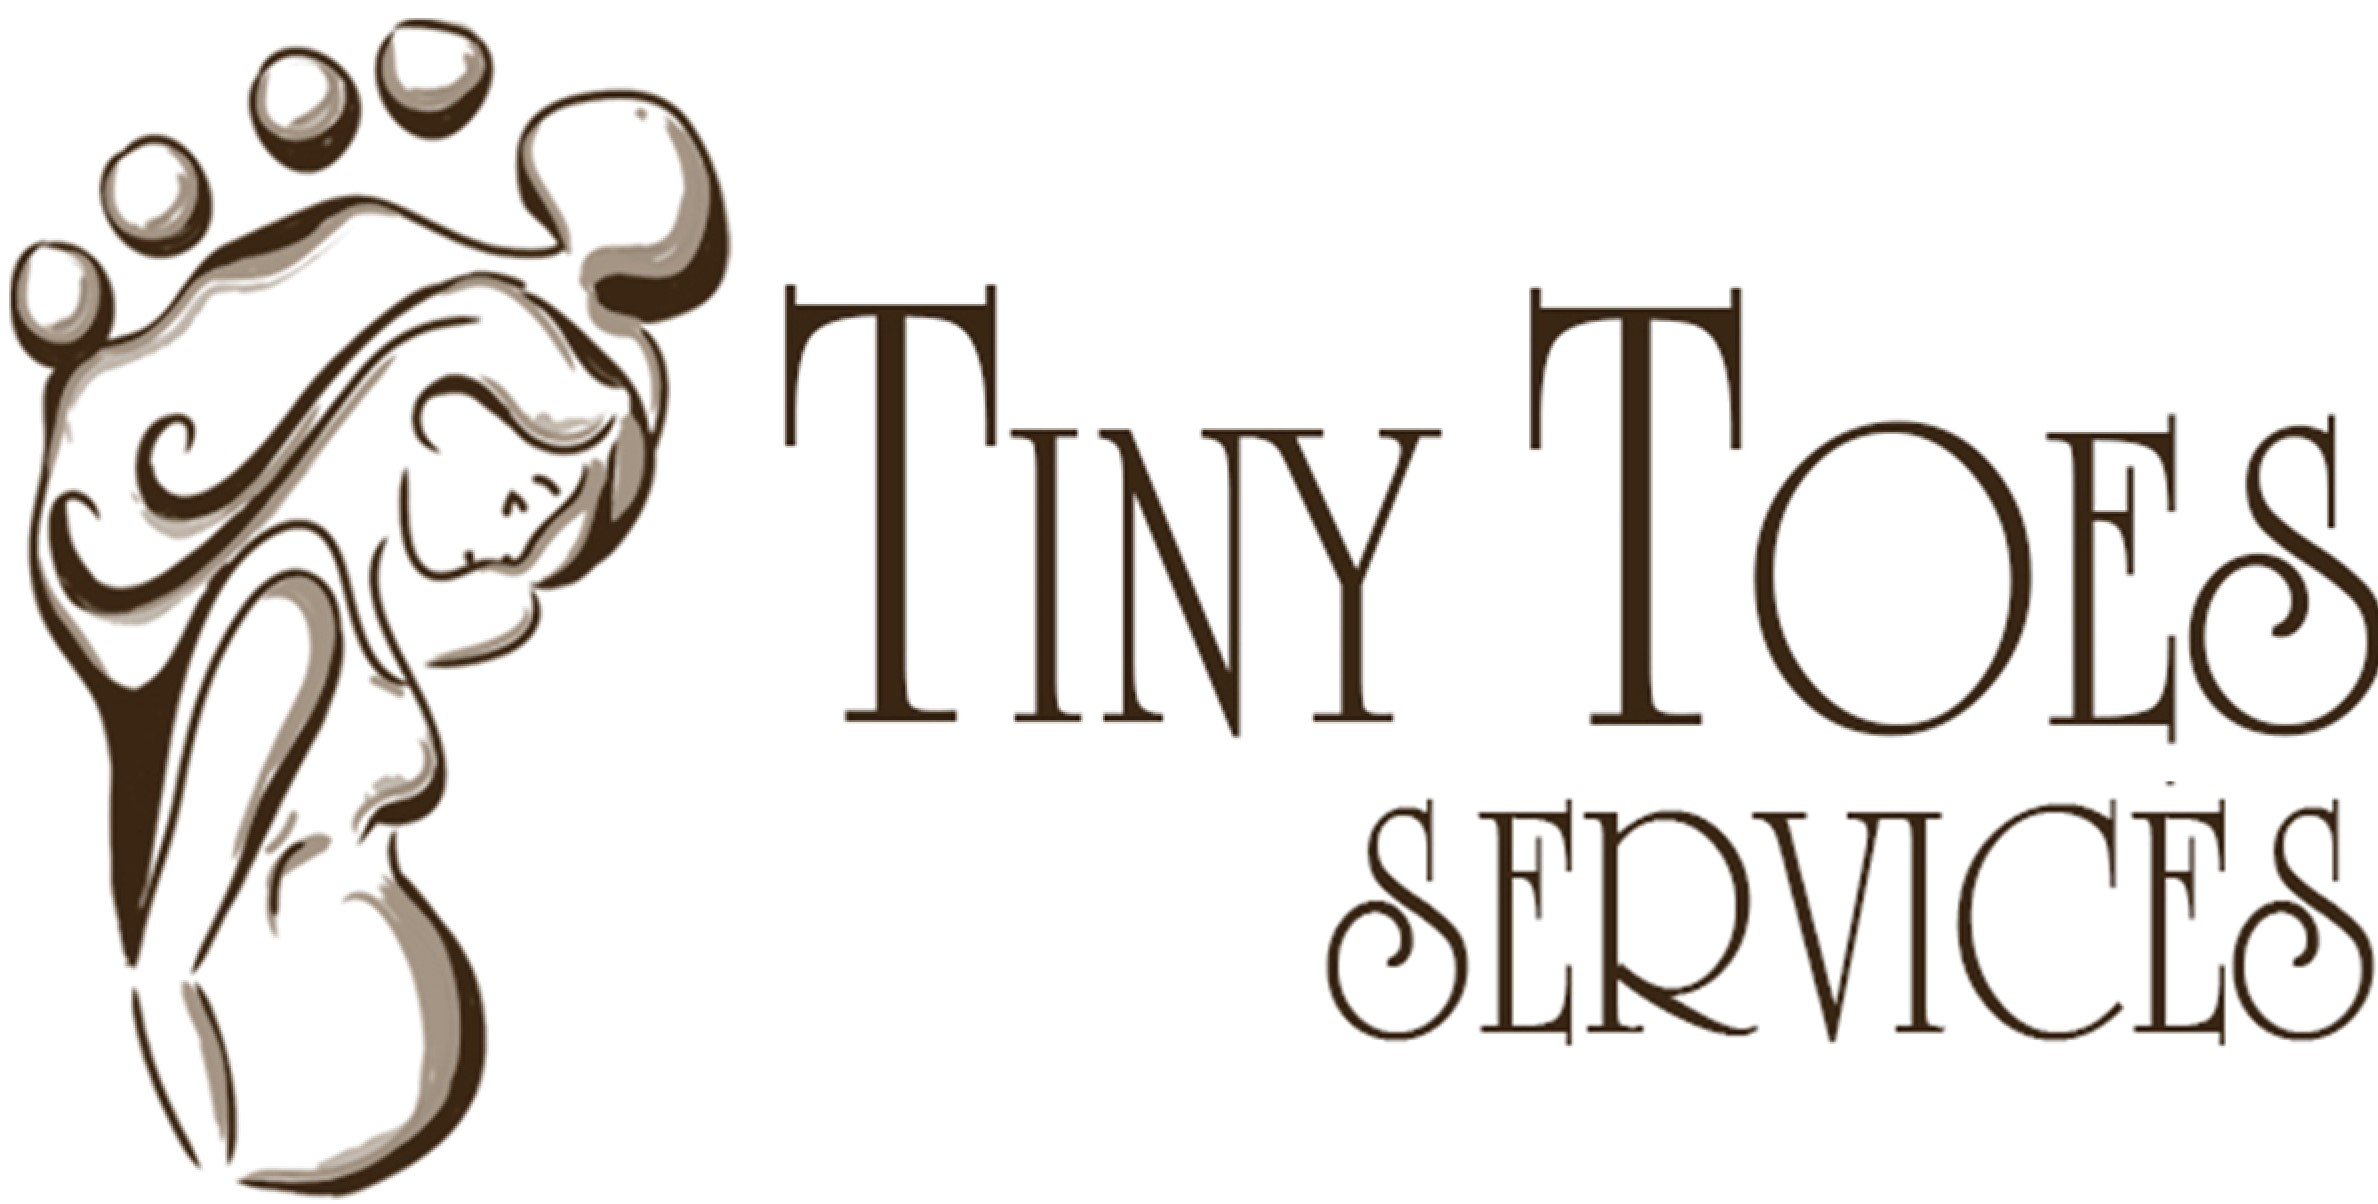 Tiny Toes Birth Services